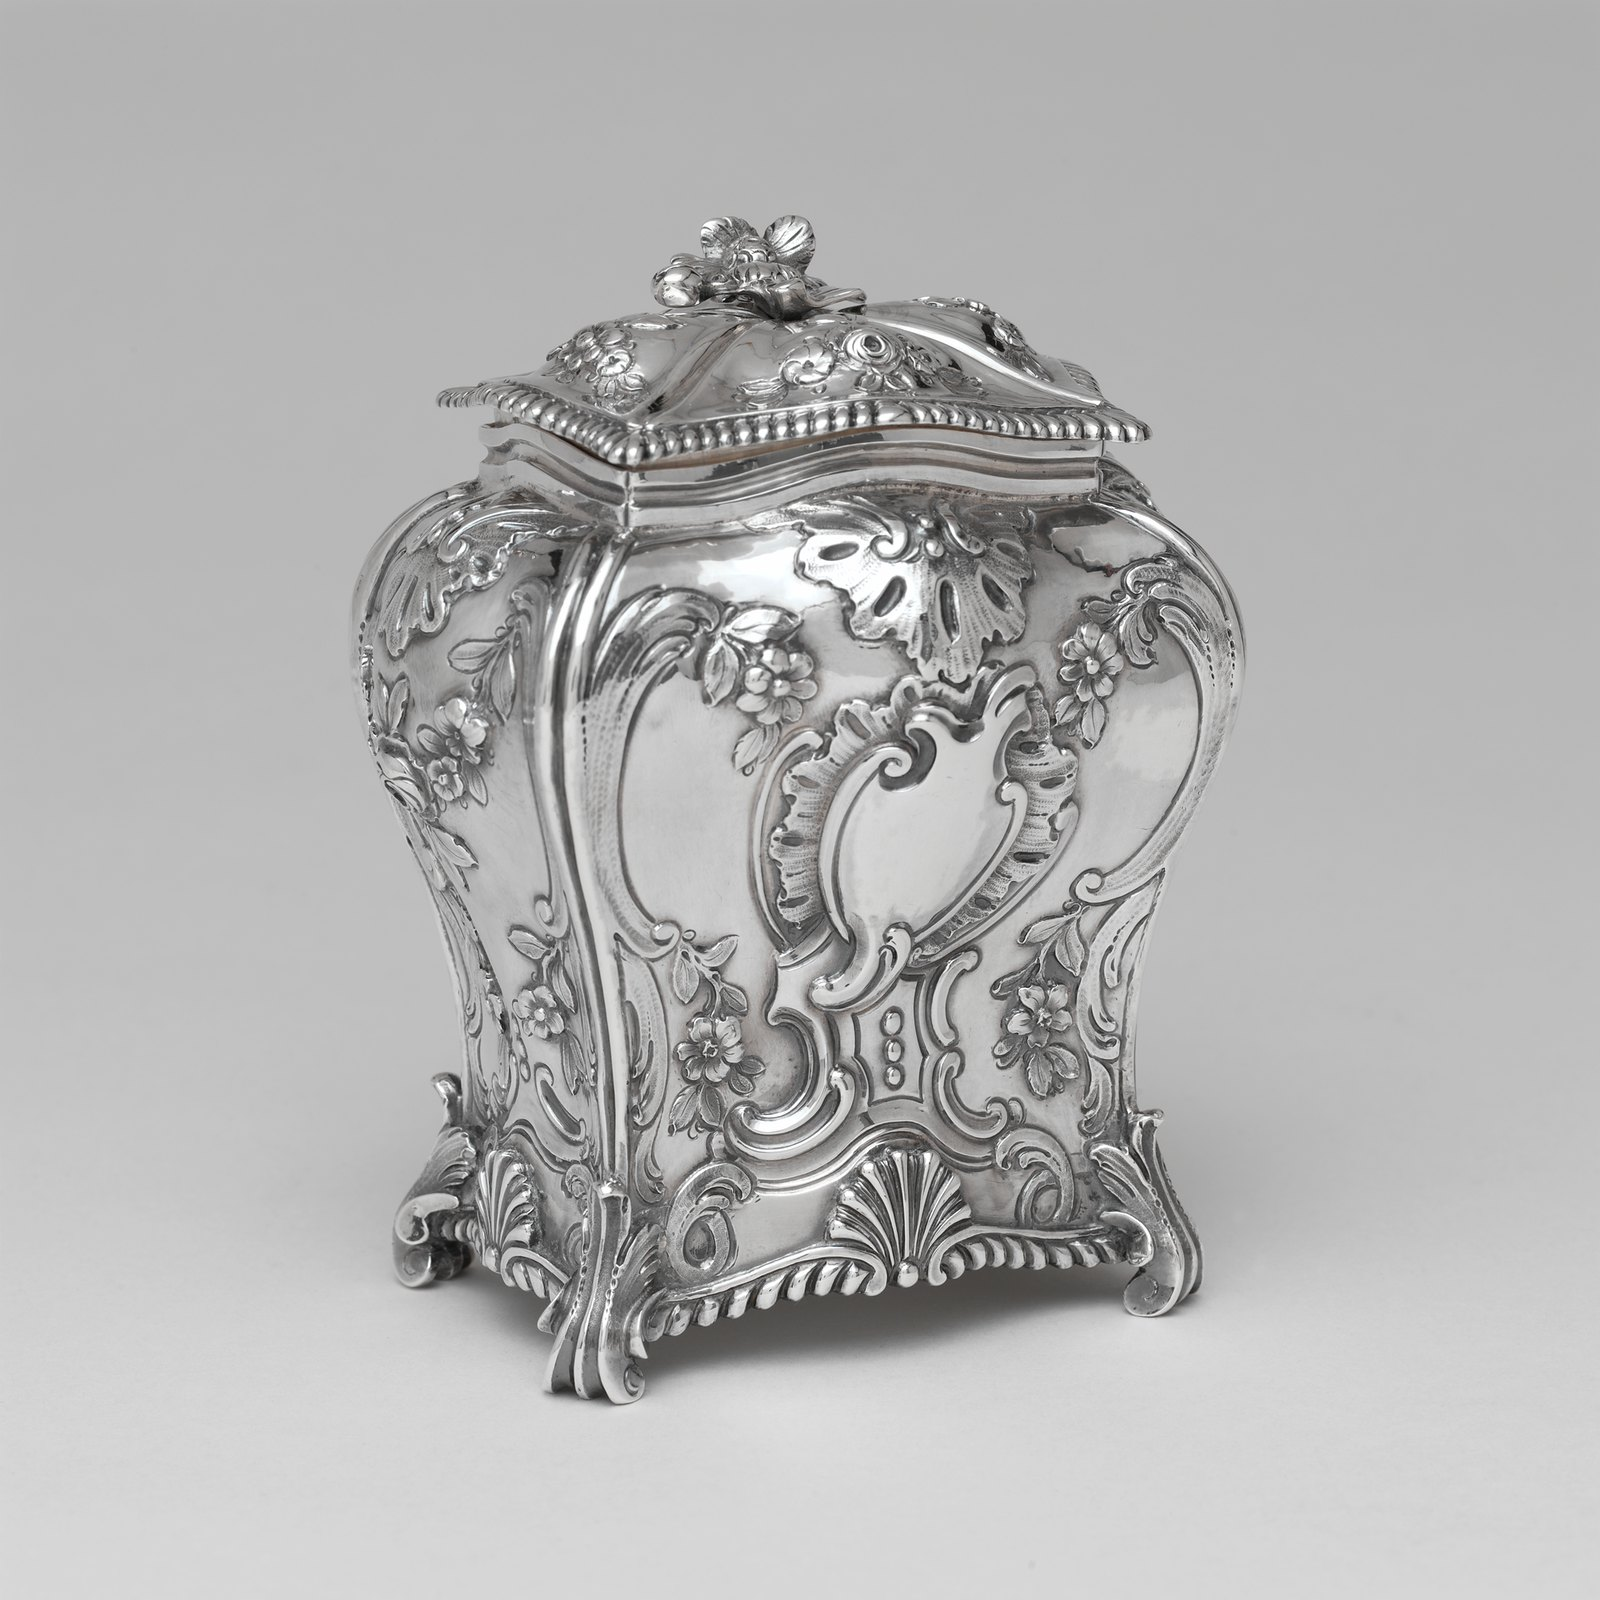 1762 Tea Caddy. British. Silver. metmuseum